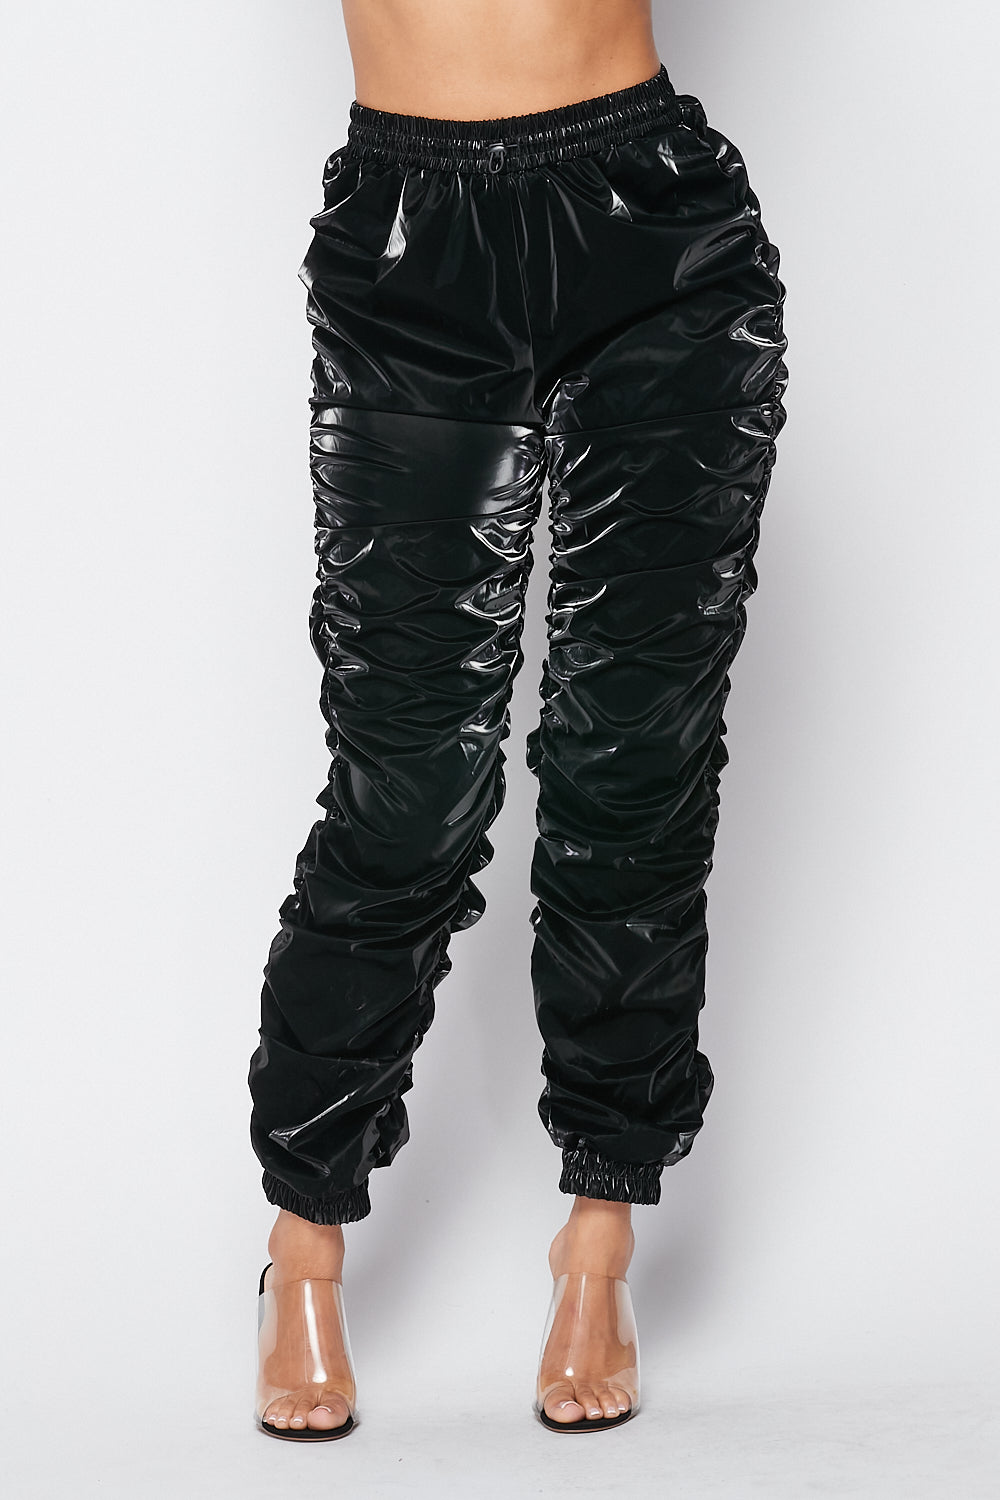 Whats Poppin Ruched PU Pants in Black - Fashion House USA